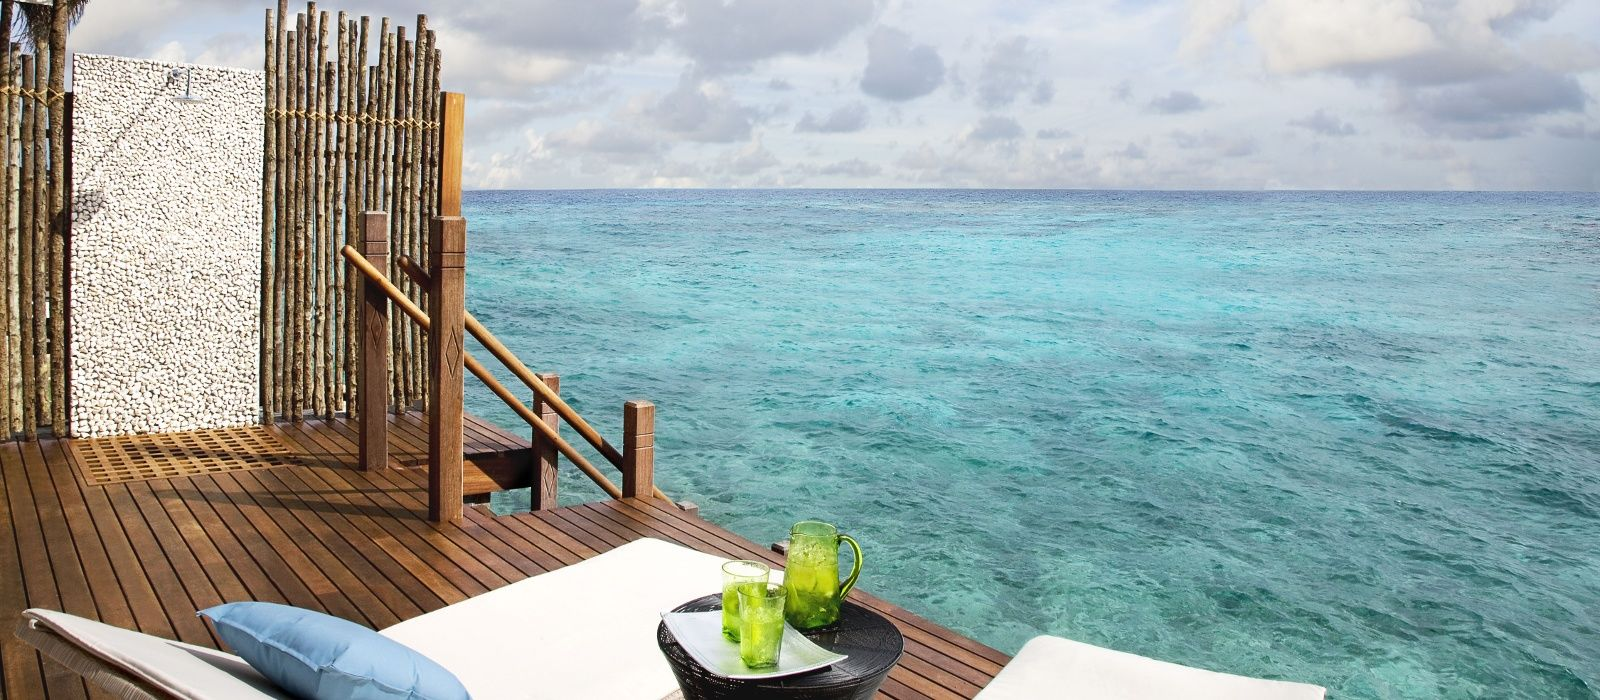 Hotel Vivanta by Taj – Coral Reef Maldives